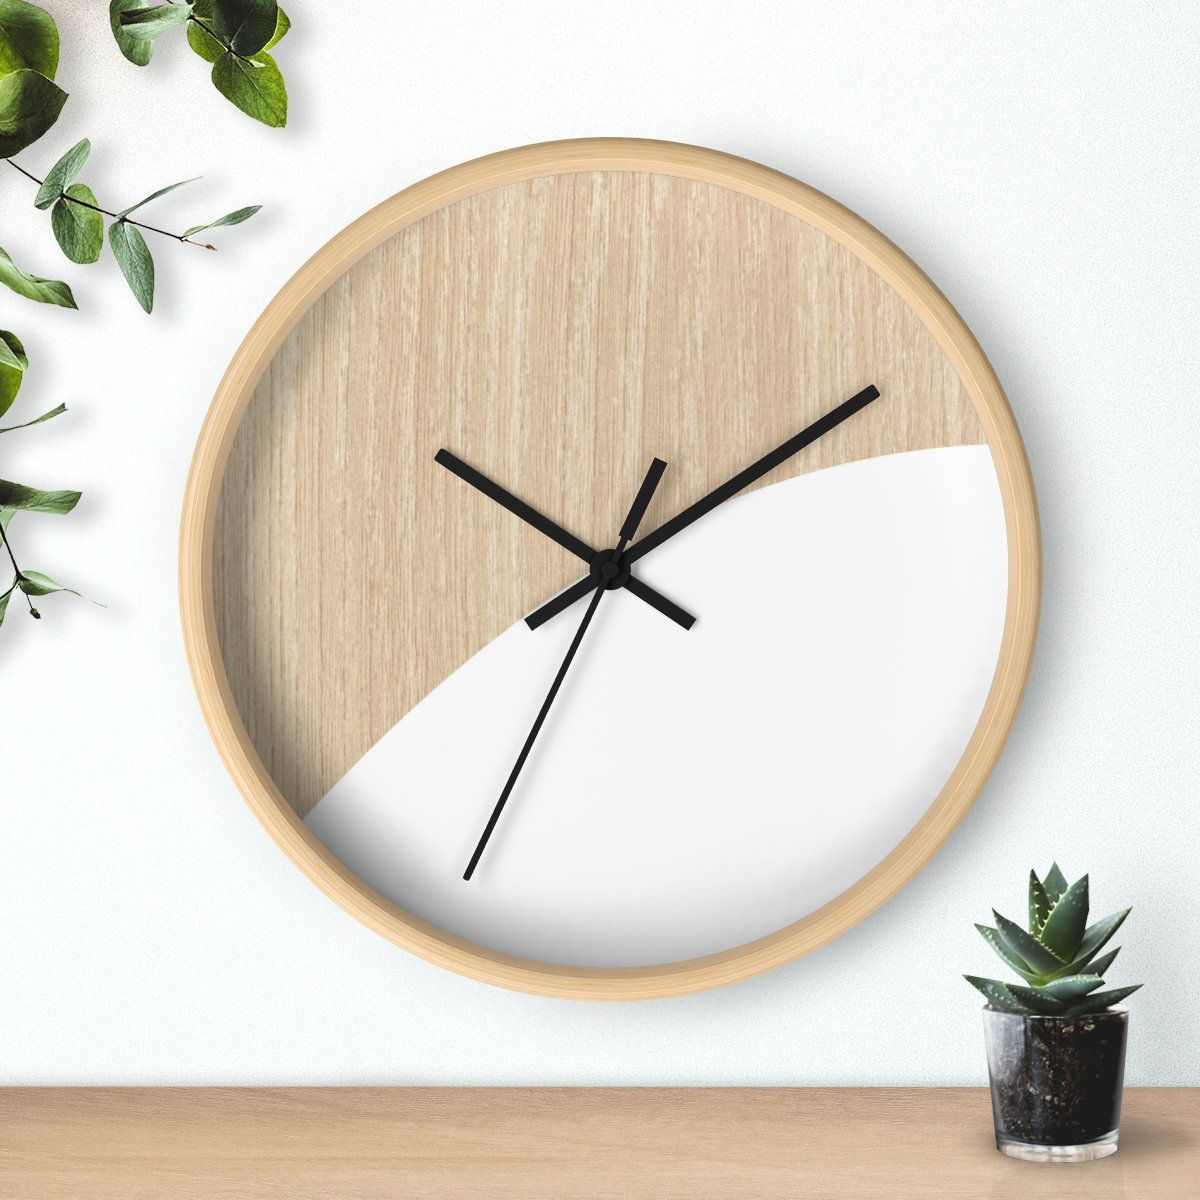 Modern Wall Clock Minimalistic Design Wall Clock On Wooden Background Scandinavian Clock Can Be Personalized Making It A Perfect Gift In 2020 Wall Clock Modern Scandinavian Clocks Wall Clock